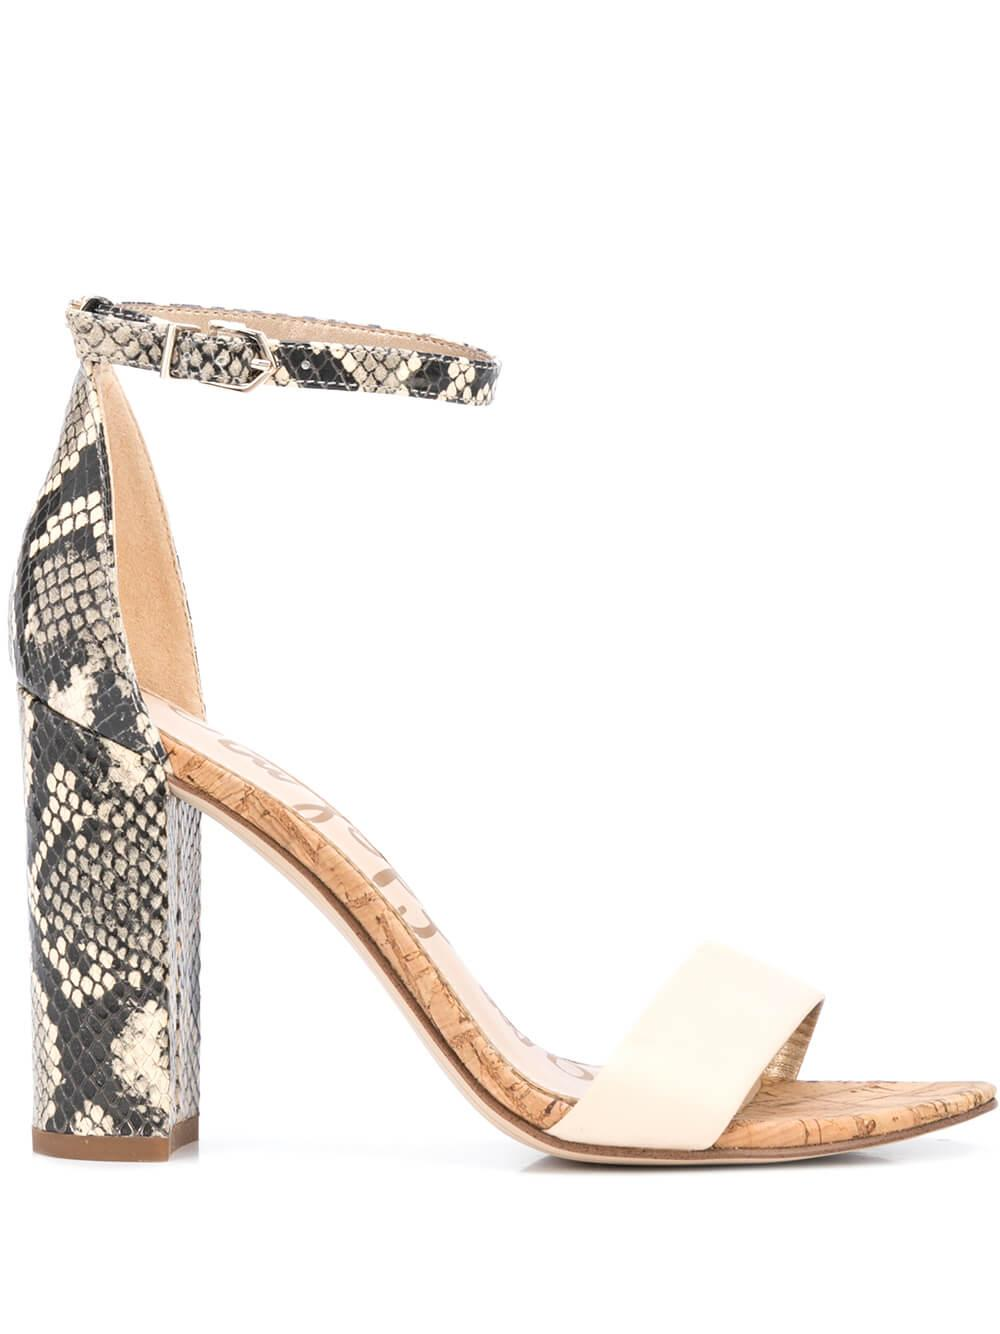 Yaro Leather Snake Block Heel Sandal